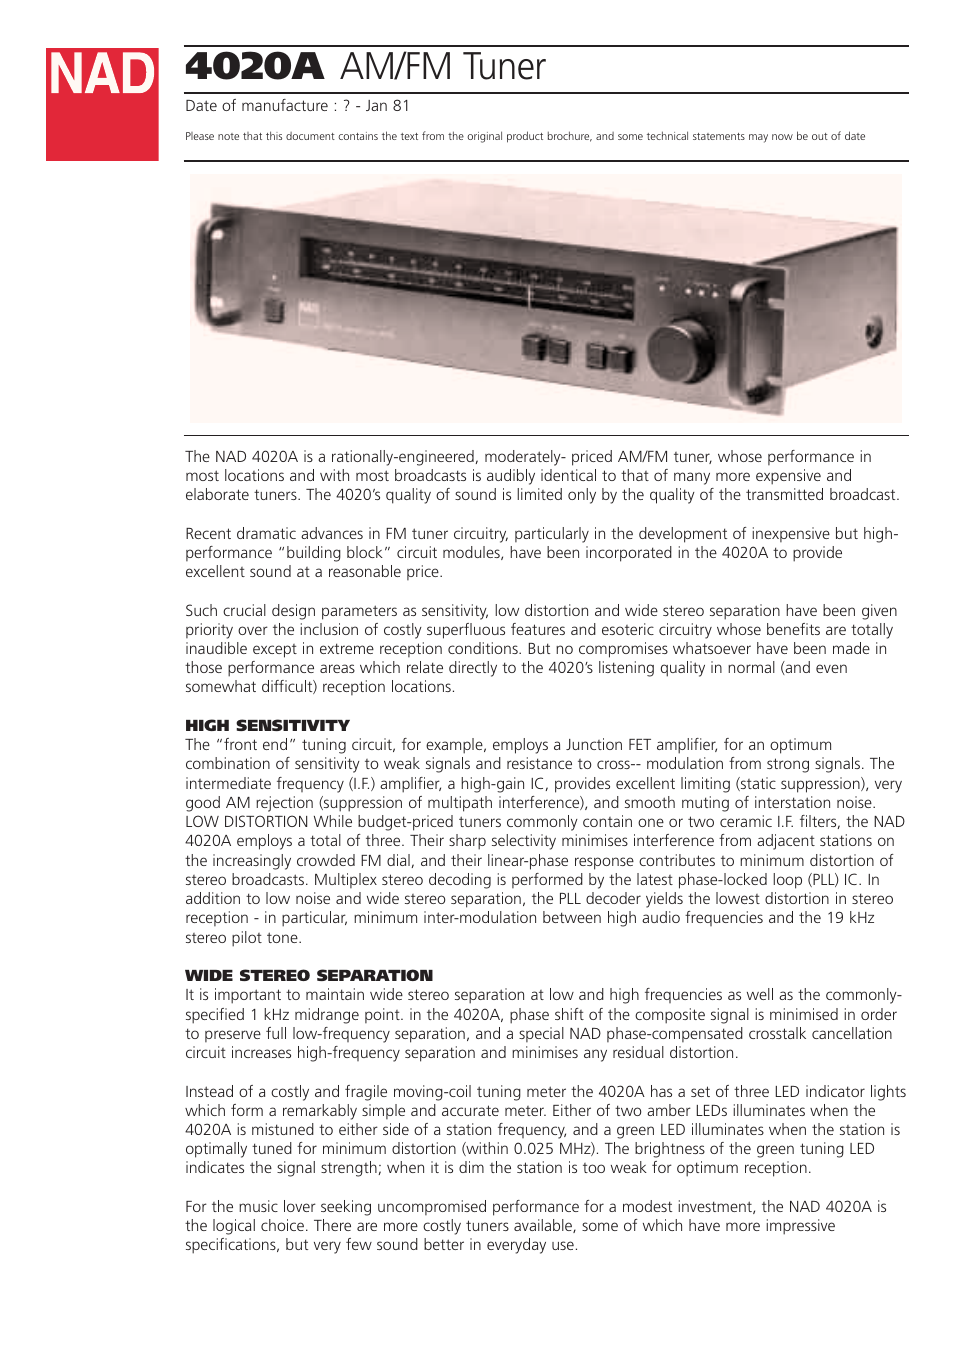 NAD 4020A User Manual | 2 pages